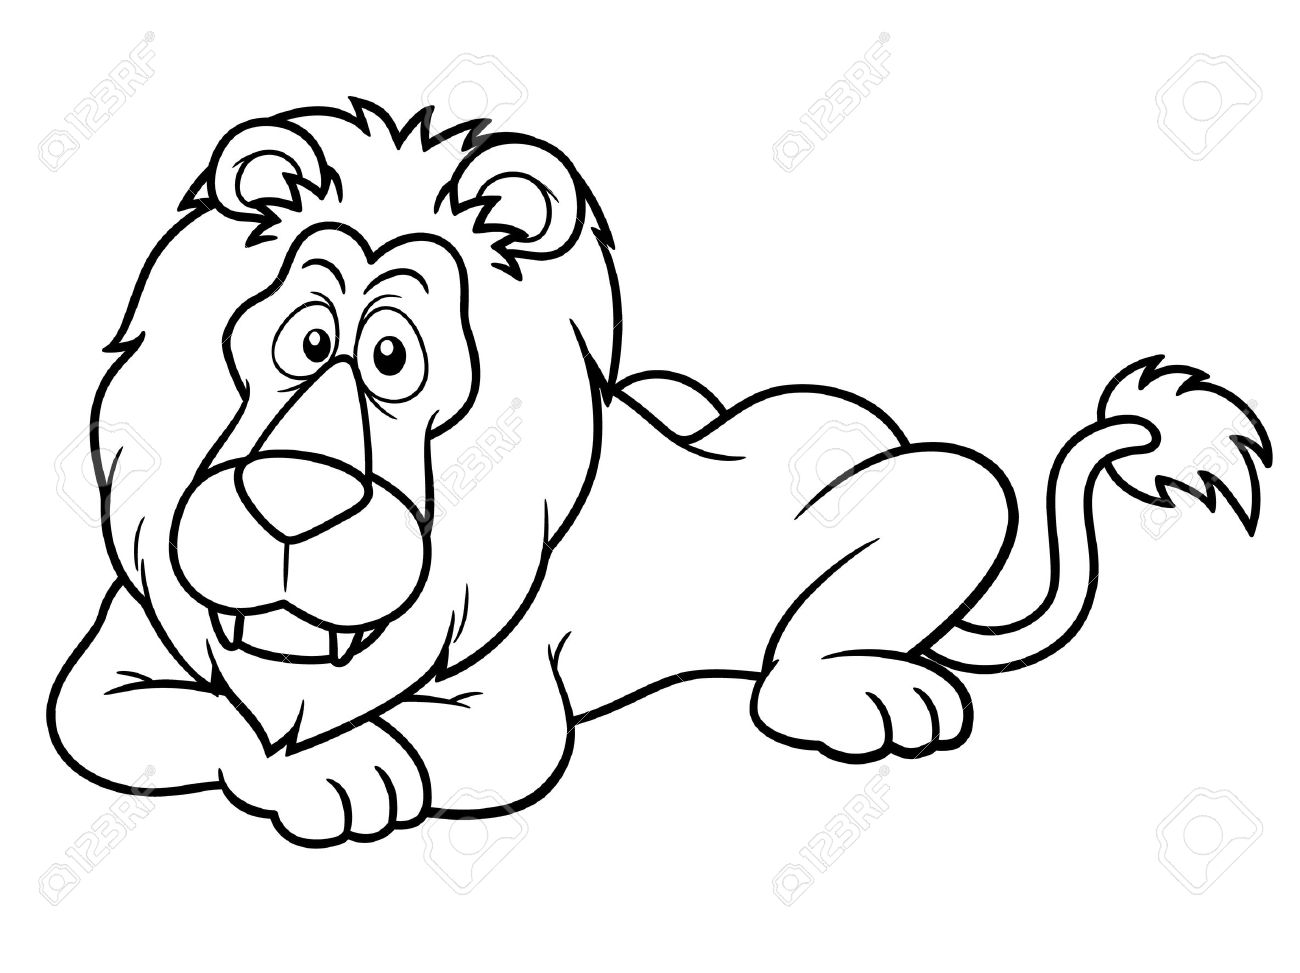 illustration of cartoon lion coloring book stock vector 17813663 - Cartoon Coloring Book